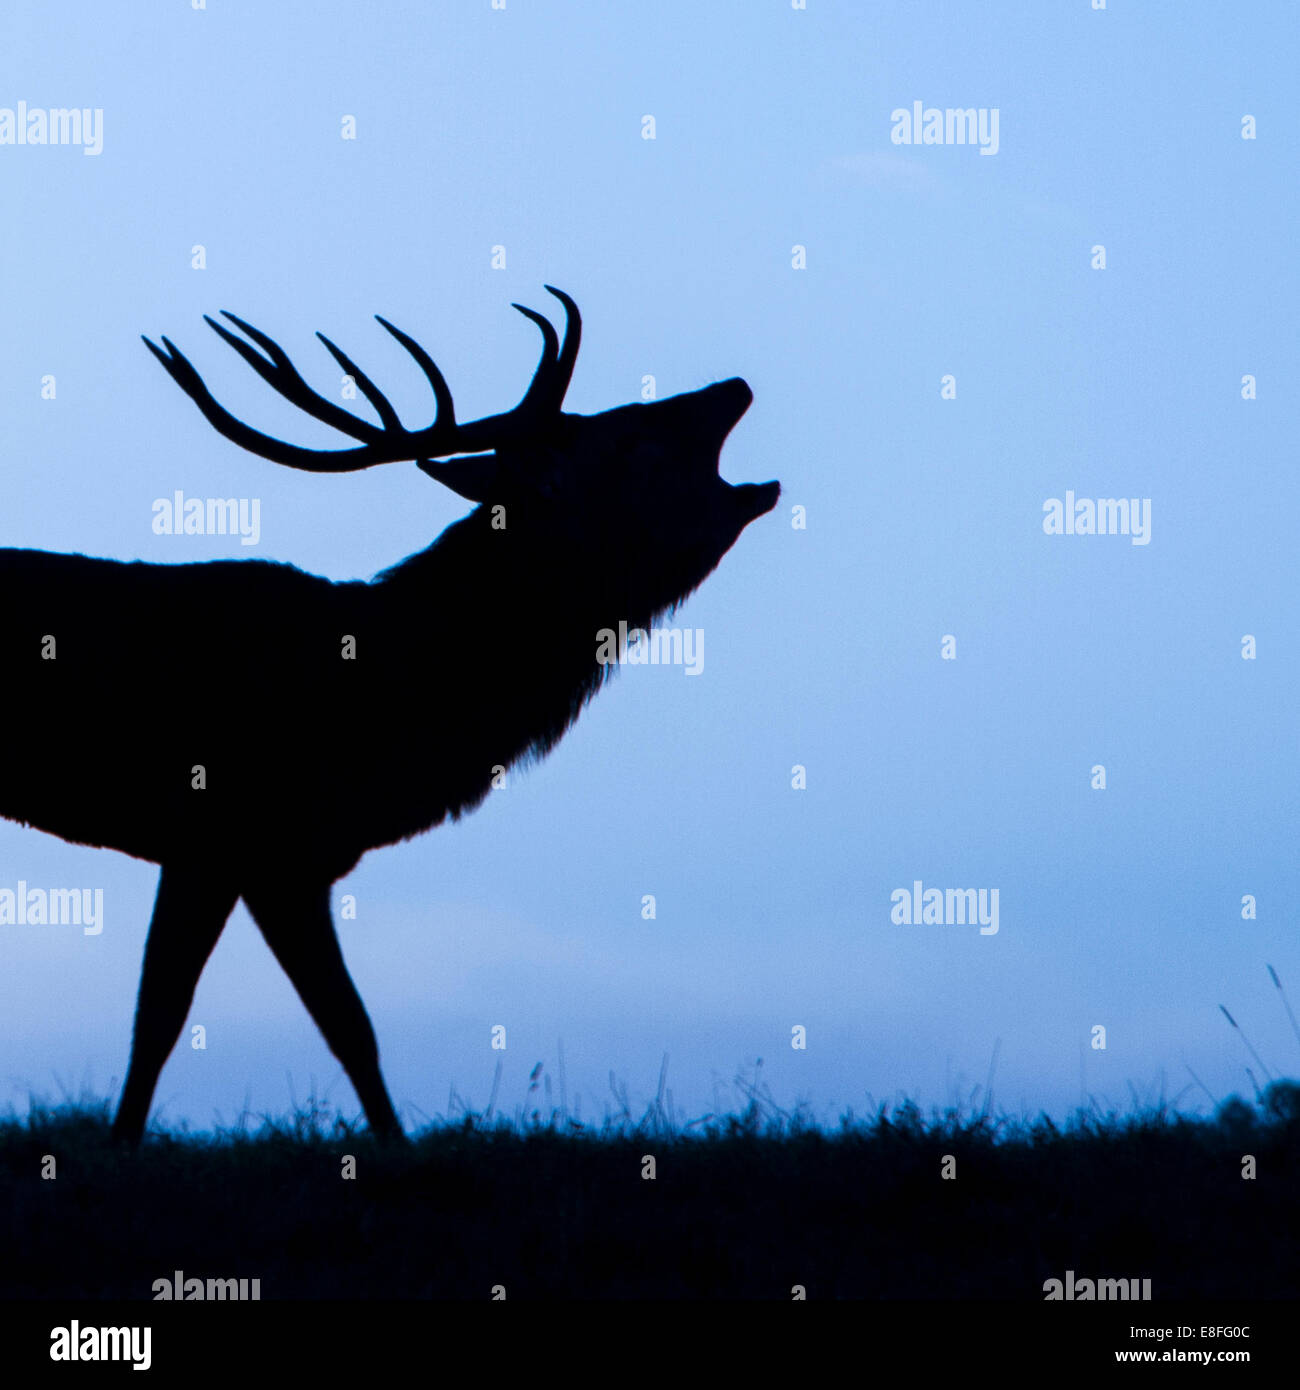 Silhouette of Stag roaring, Berkshire, England, UK - Stock Image